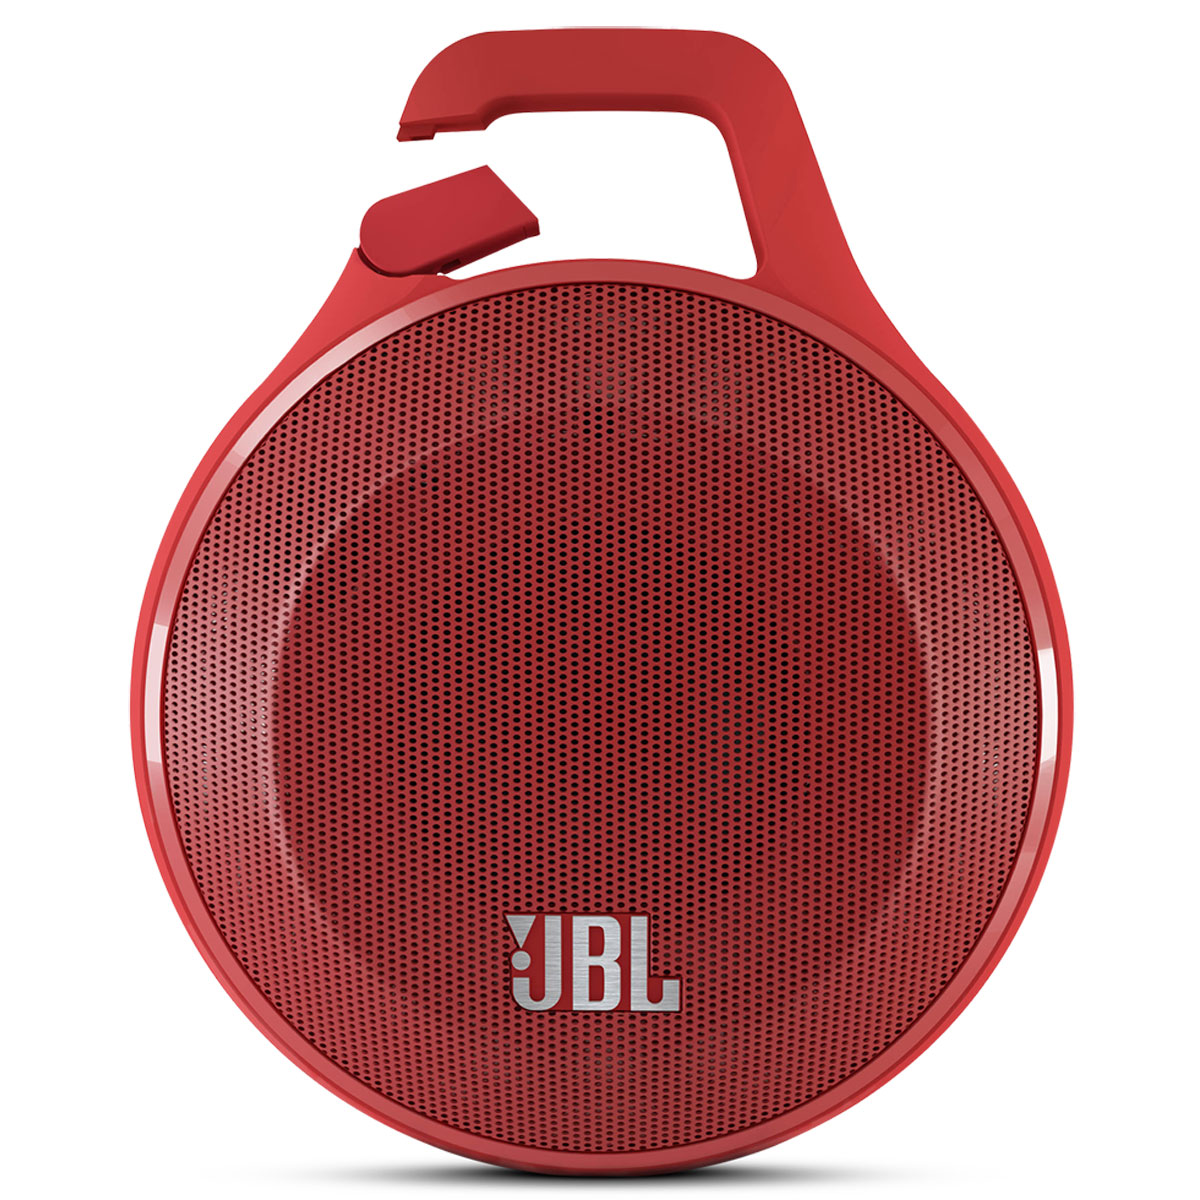 jbl clip rouge dock enceinte bluetooth jbl sur. Black Bedroom Furniture Sets. Home Design Ideas